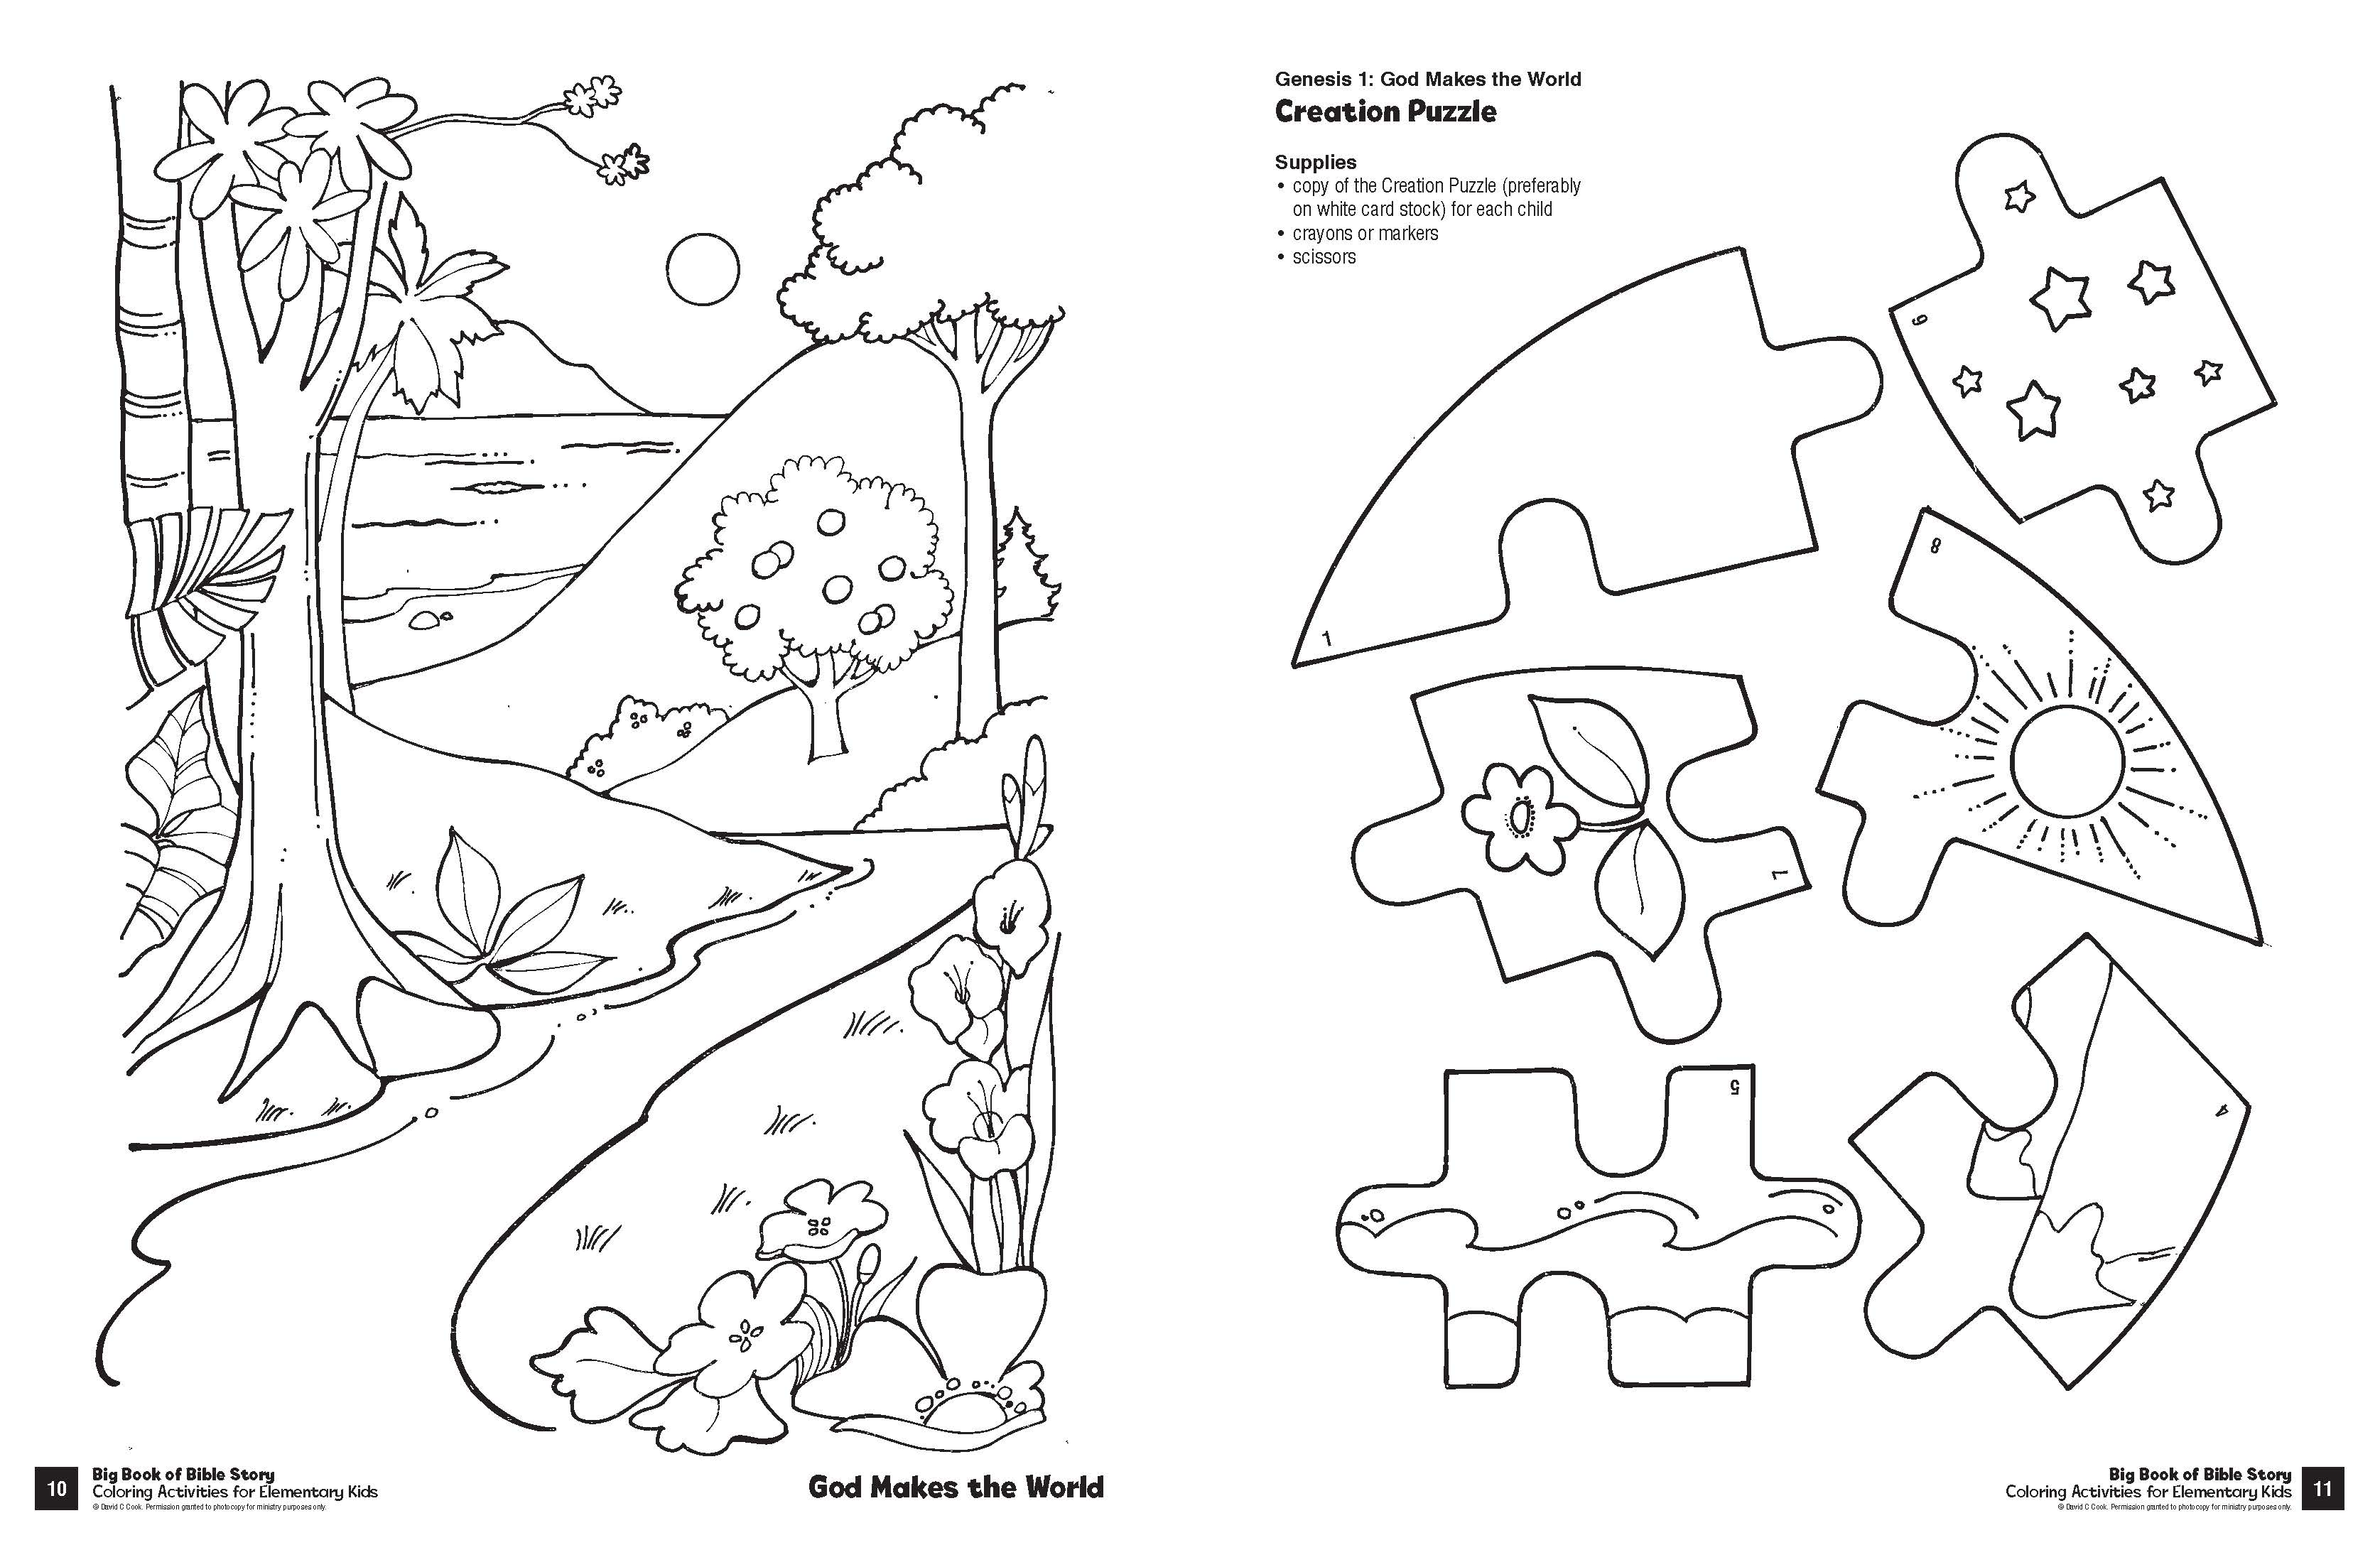 - Big Book Of Bible Story Coloring Activities For Elementary Kids